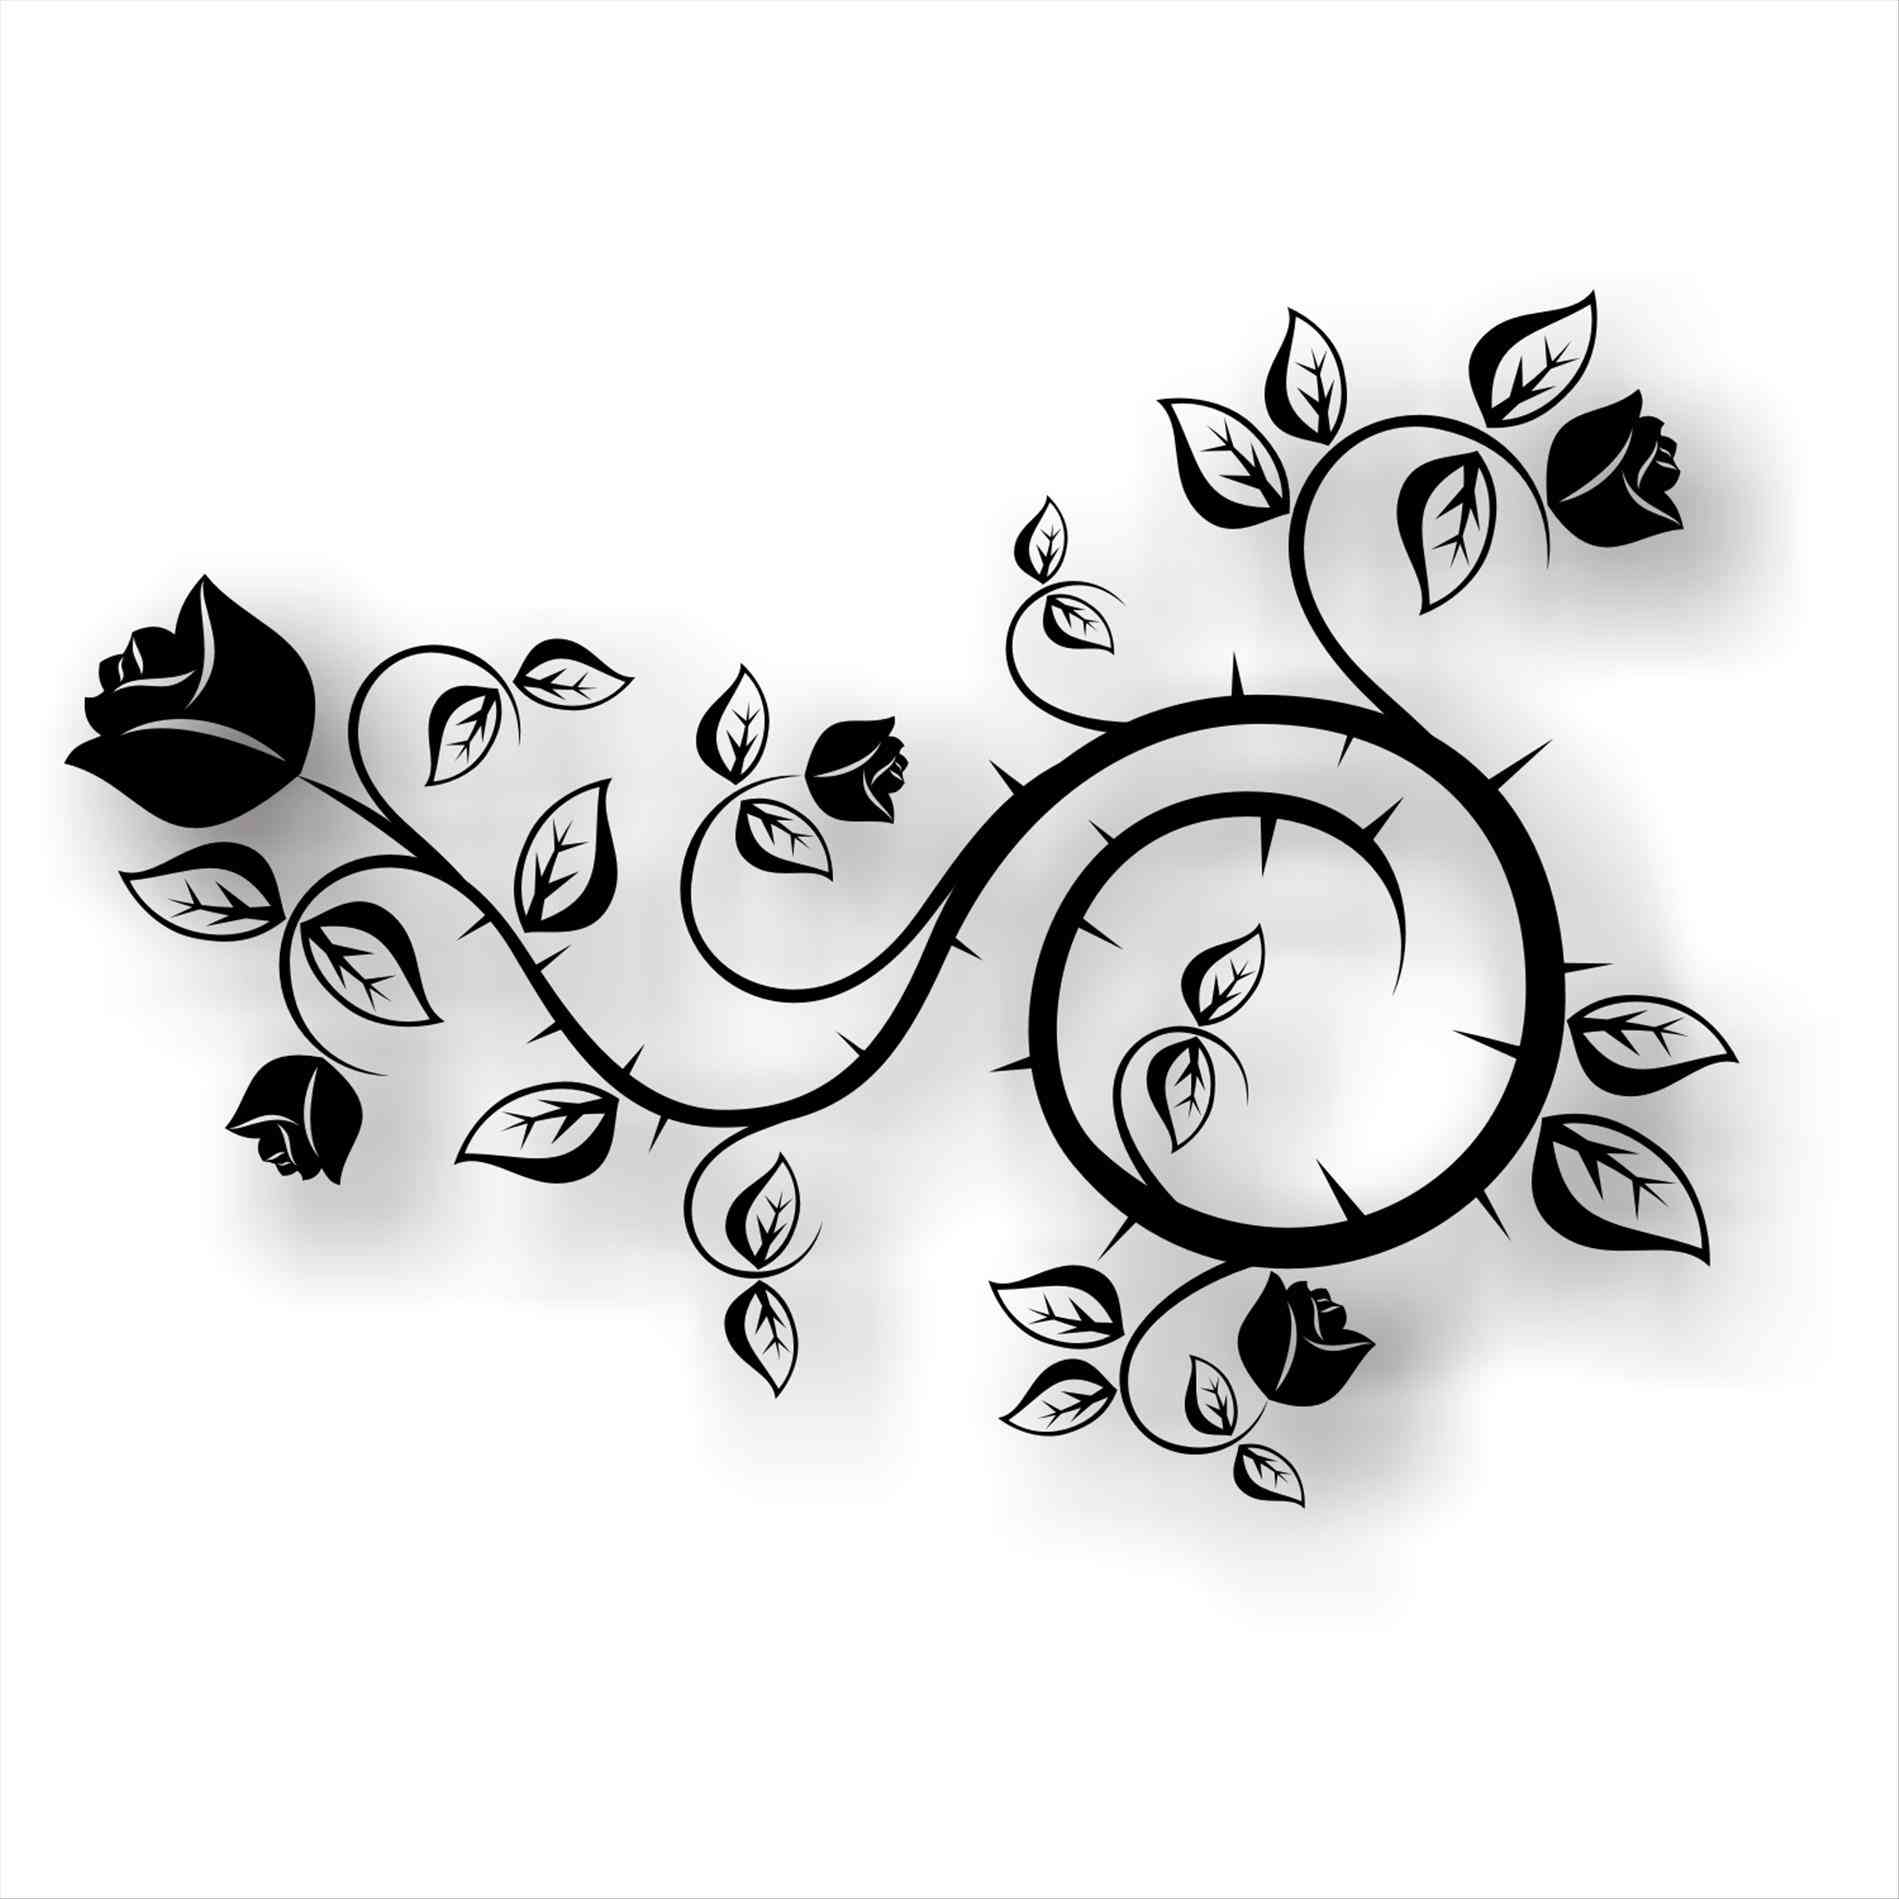 1899x1899 Onlygfxcom Flower Black And White Free Icons Backgrounds Flower